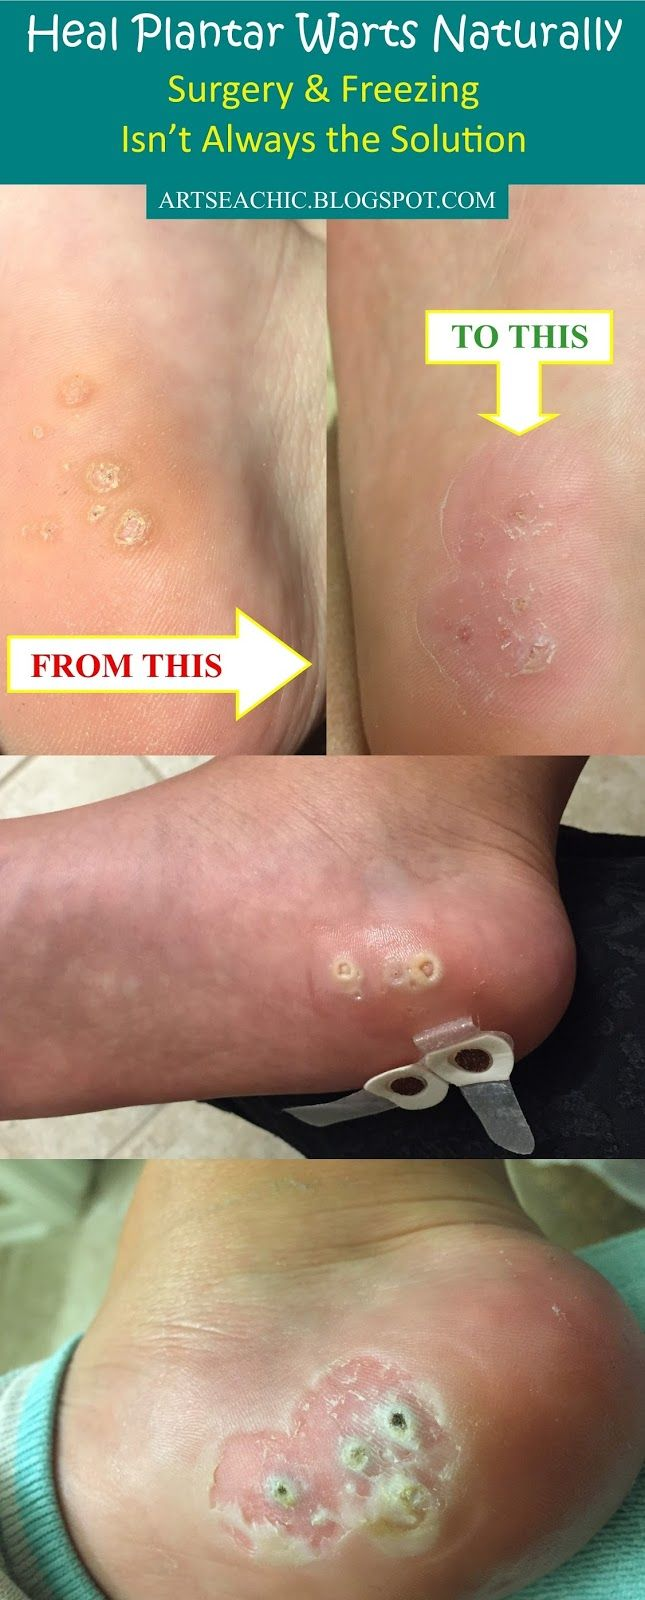 Home remedies for large plantar warts.